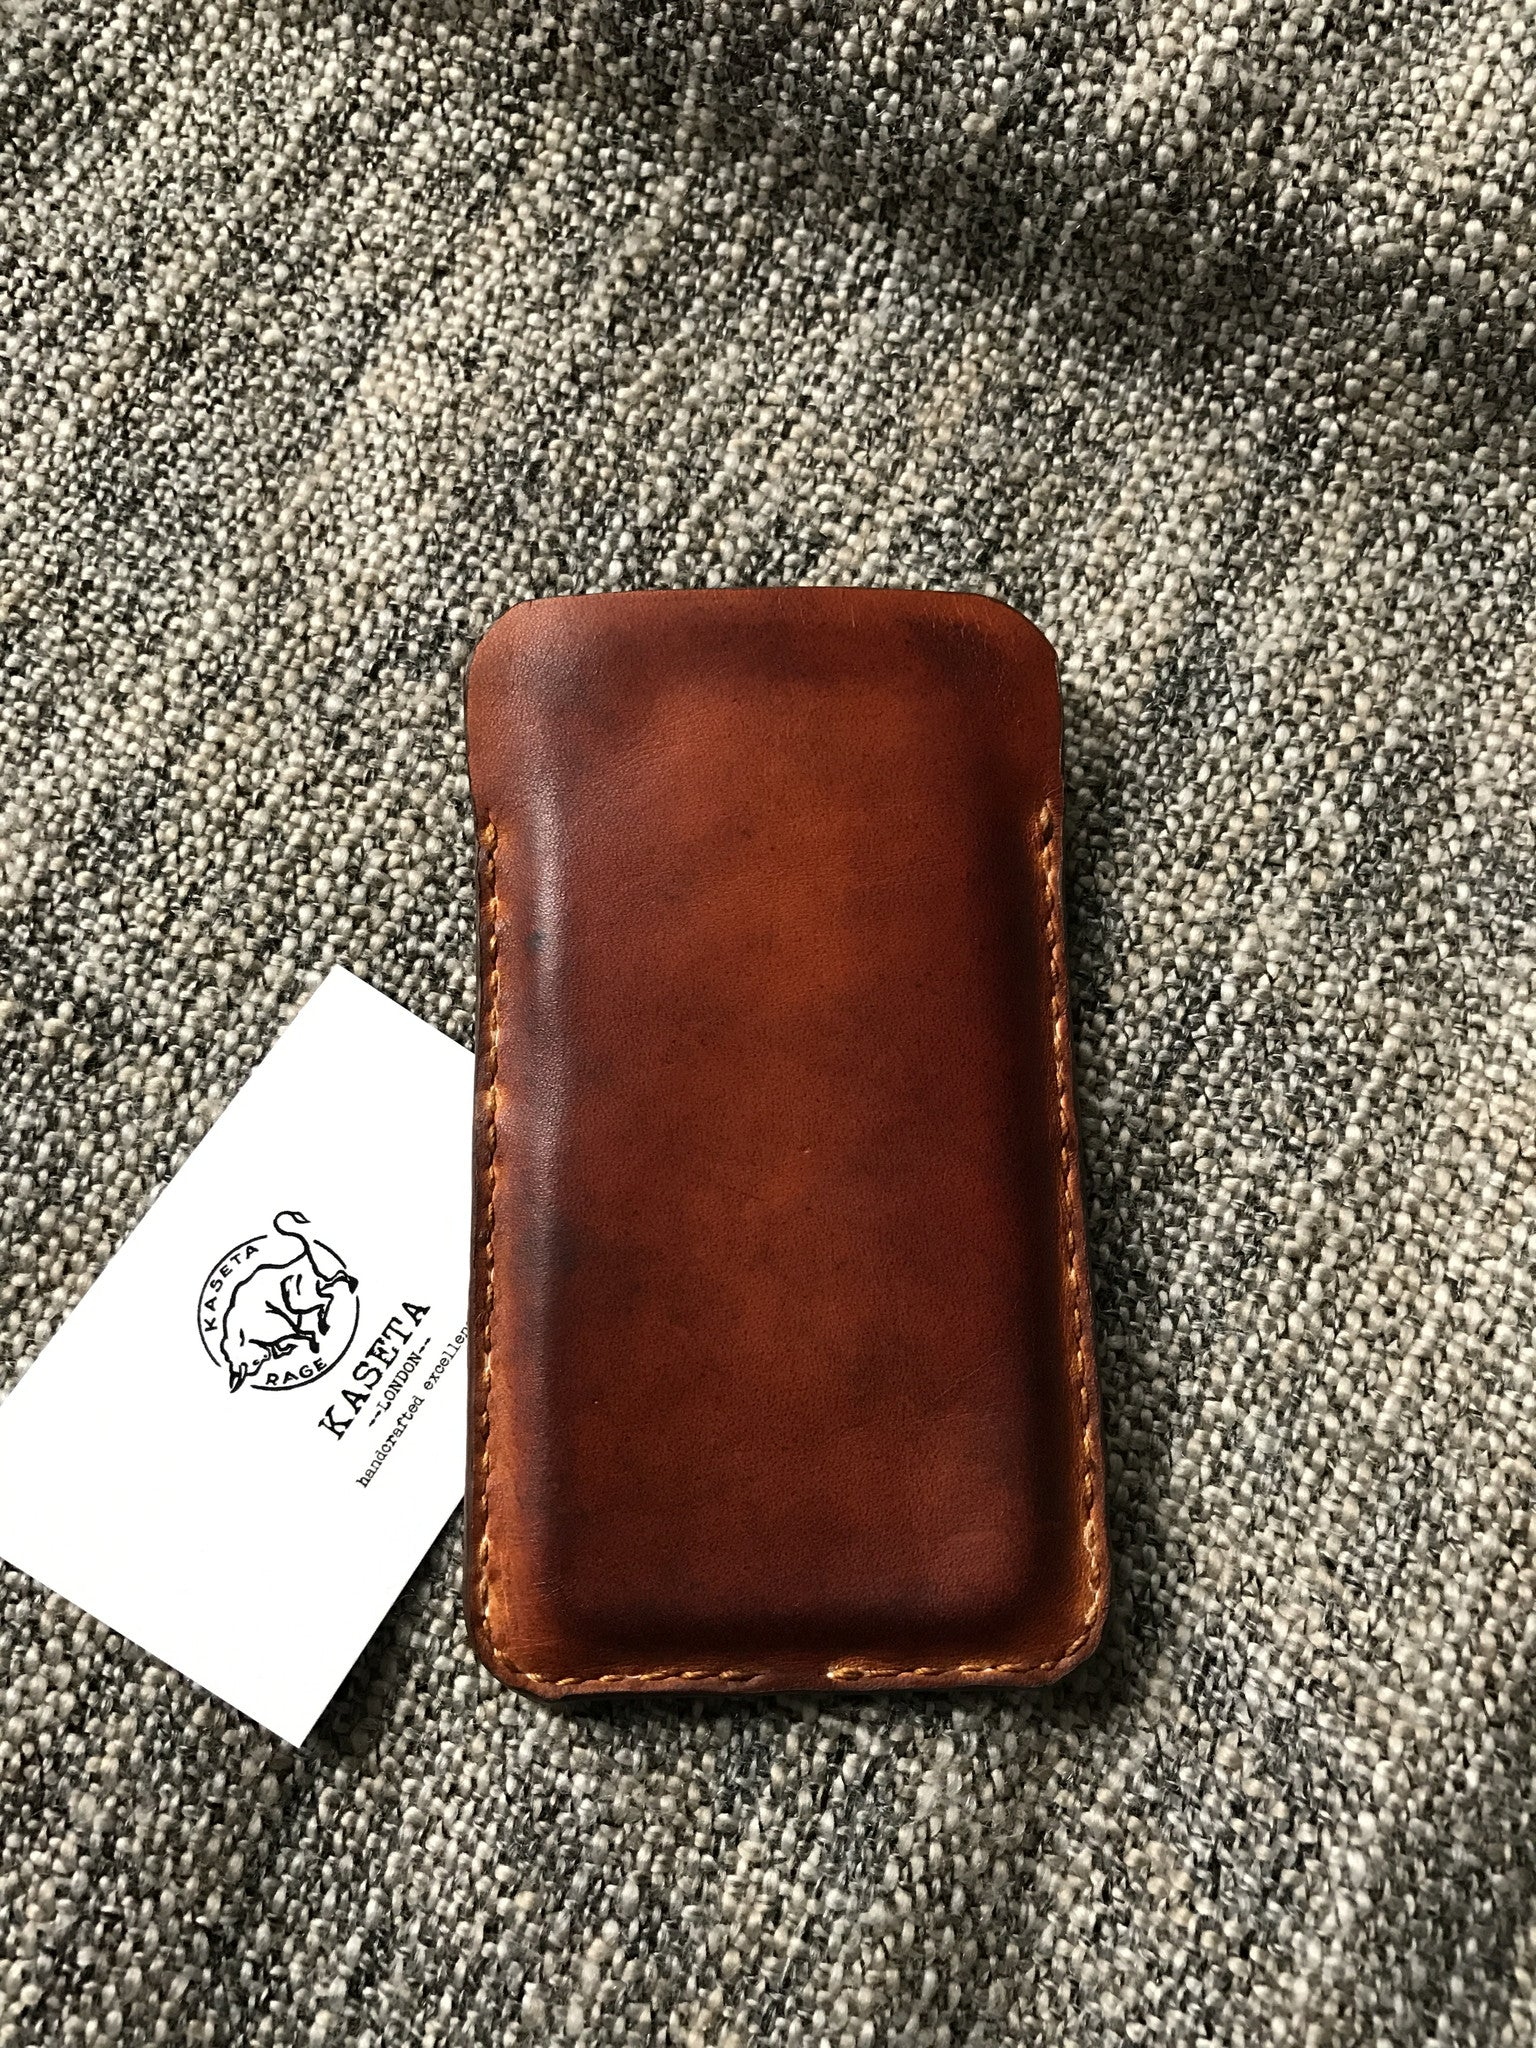 Leather Wallet Sleeve, Card Holder for iPhone 6 6s 7 Old Brown - Kaseta